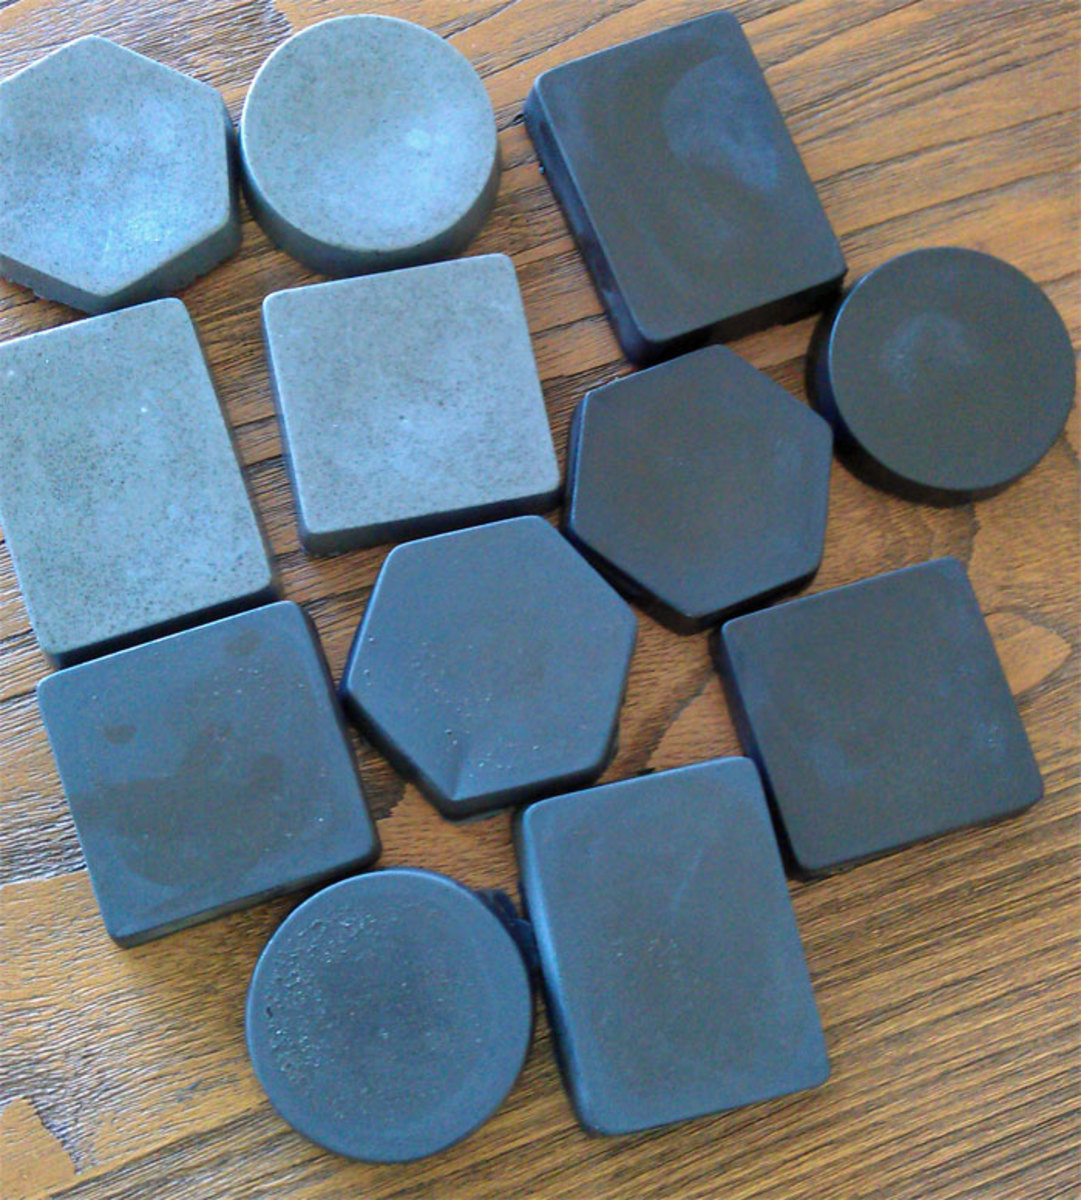 Diy Soap Without Glycerin How To Make Bamboo Charcoal Soap Recipe With Pictures